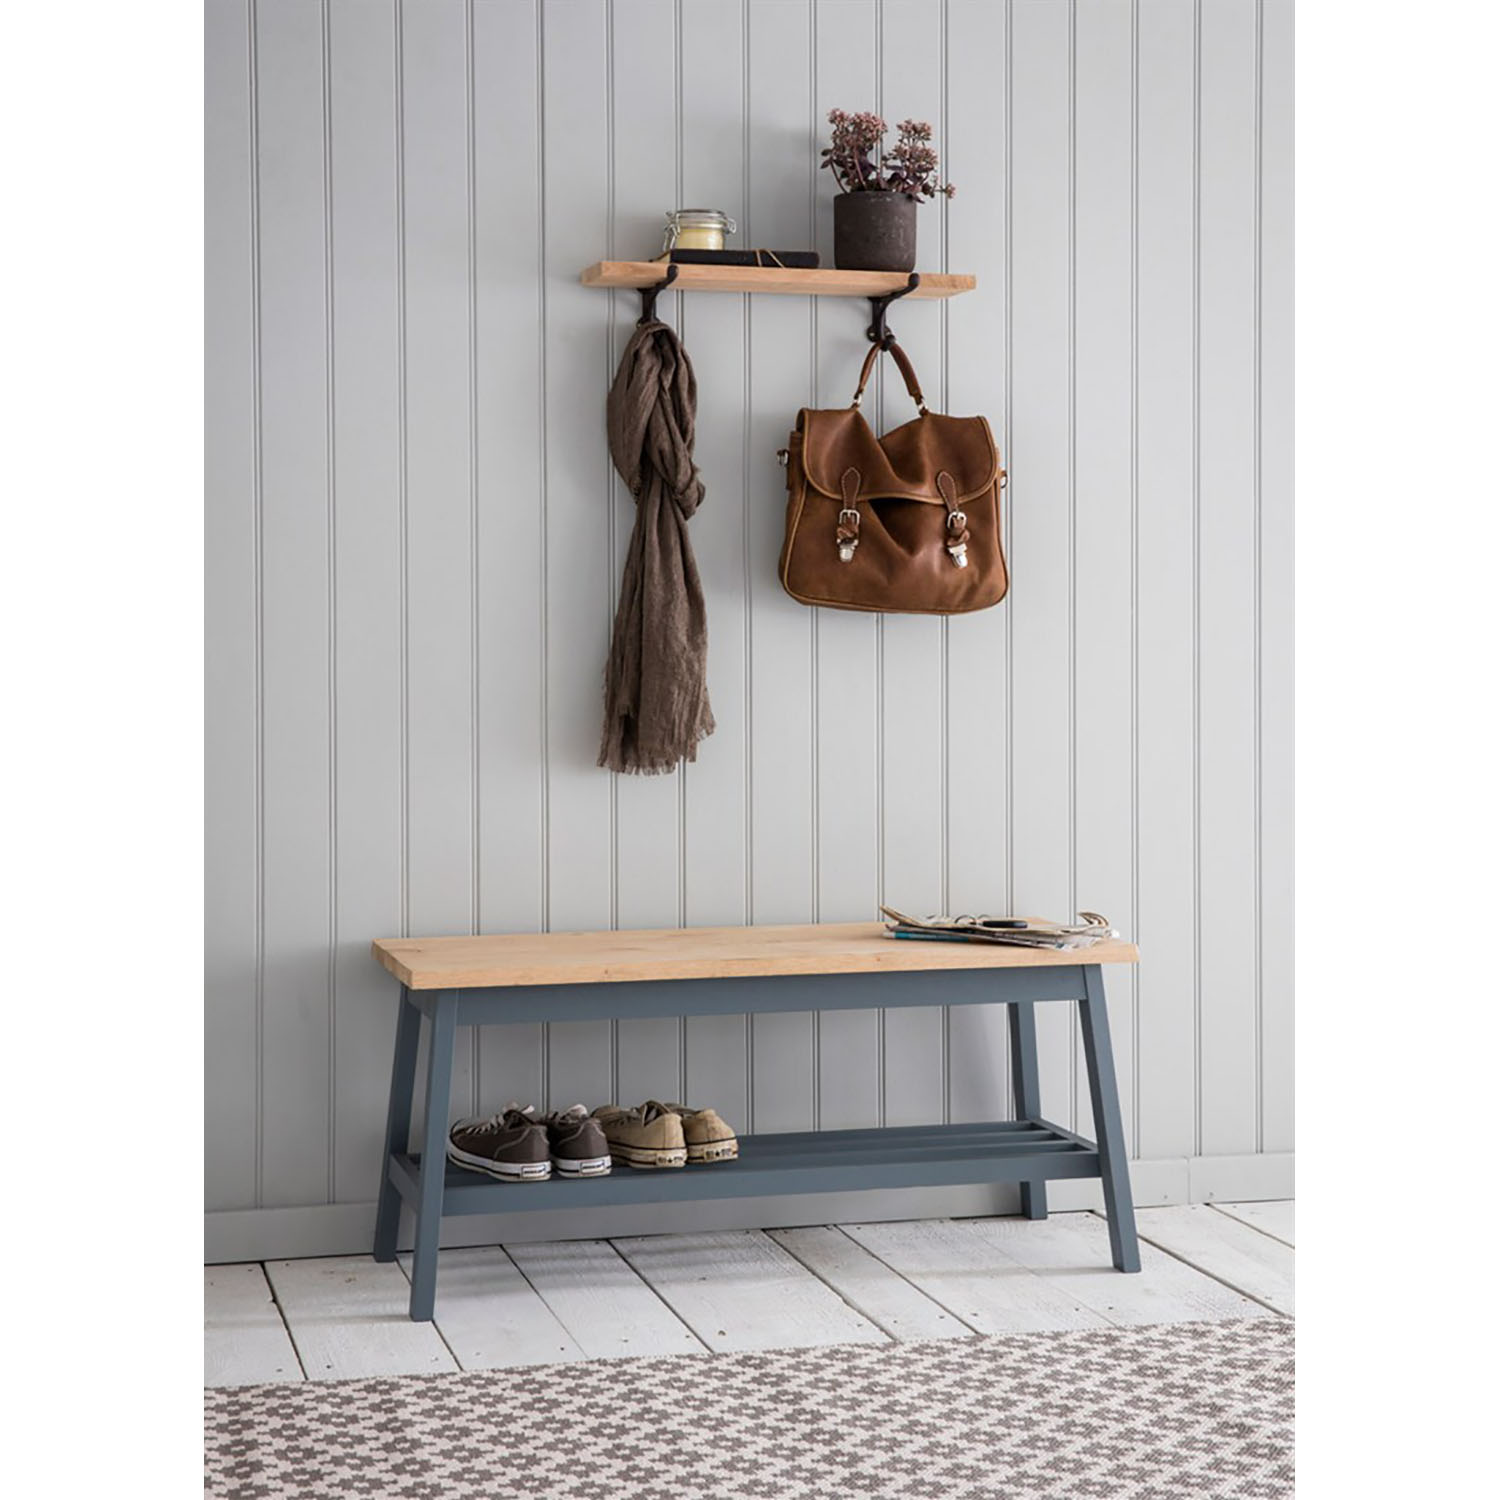 Image of Garden Trading Clockhouse Hallway Bench, Charcoal